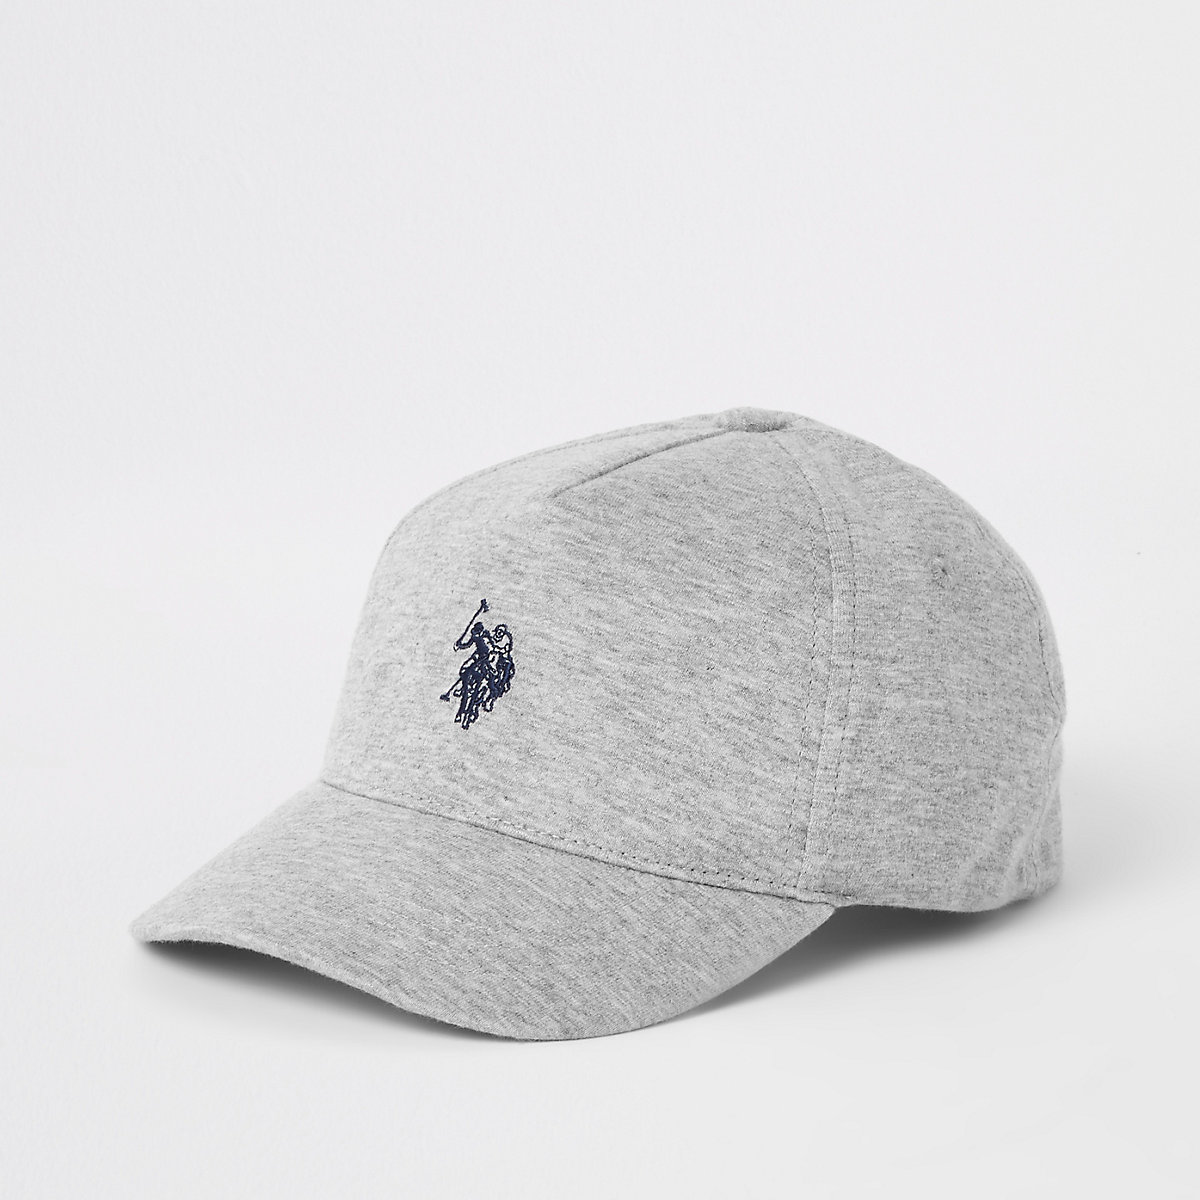 fe8d8227f39 Boys grey U.S. Polo Assn. cap - Hats - Accessories - boys